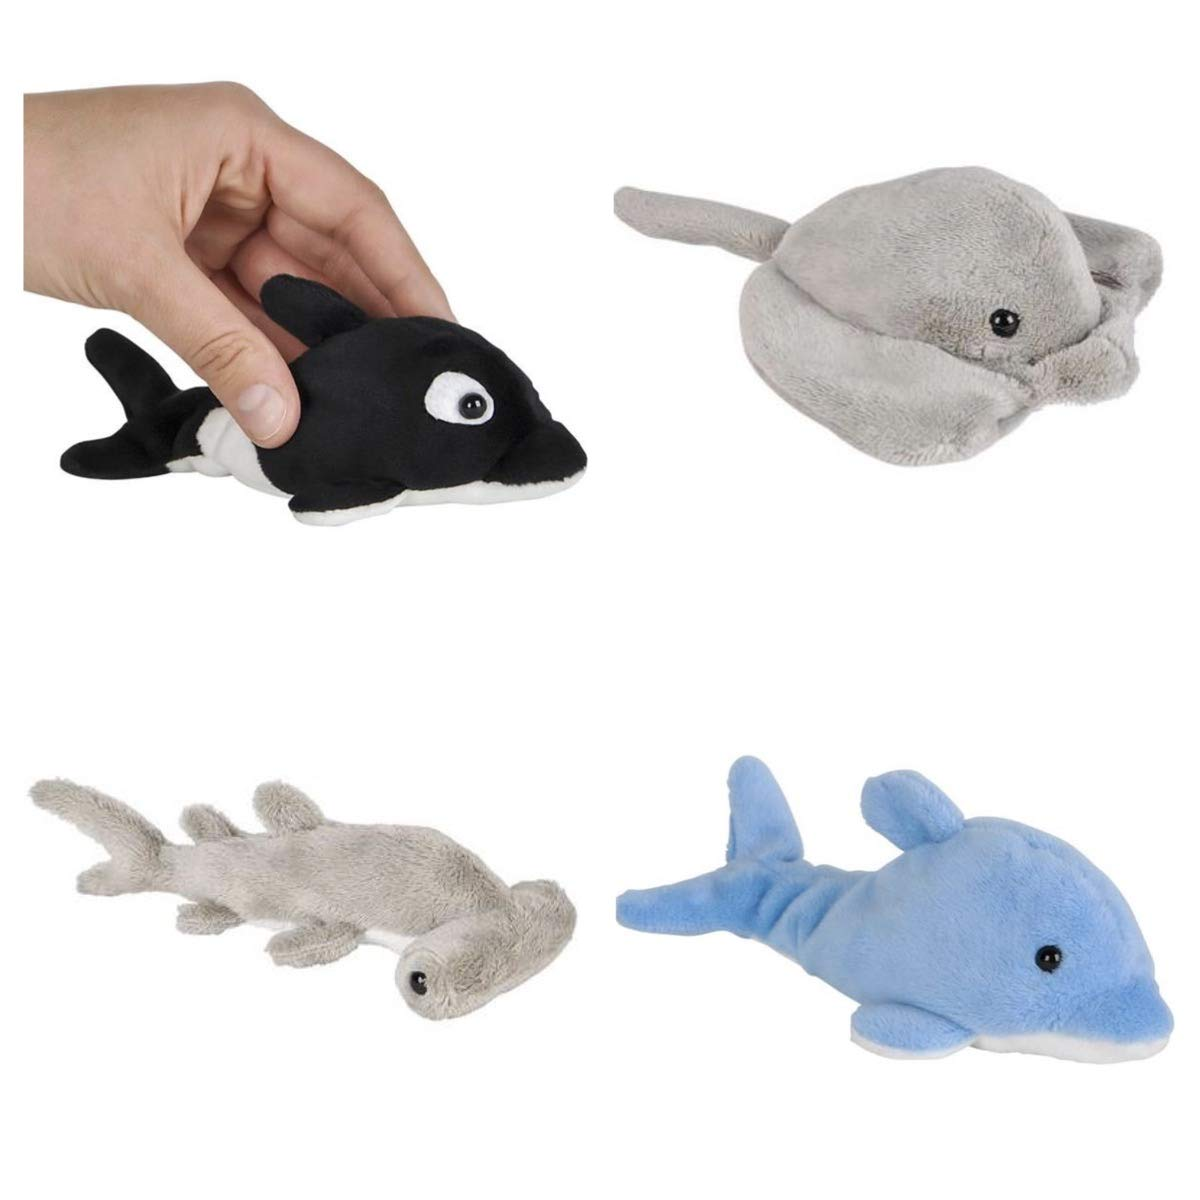 Hammerhead SHARK 4 STINGRAY Four Adorable Mini SEA LIFE 5 Plush Under the Sea PARTY FAVORS BEANIE Stuffed Animals STOCKING Stuffers GIFTS Fish RIN Dolphin /& Orca Whale Toys Ocean FISH